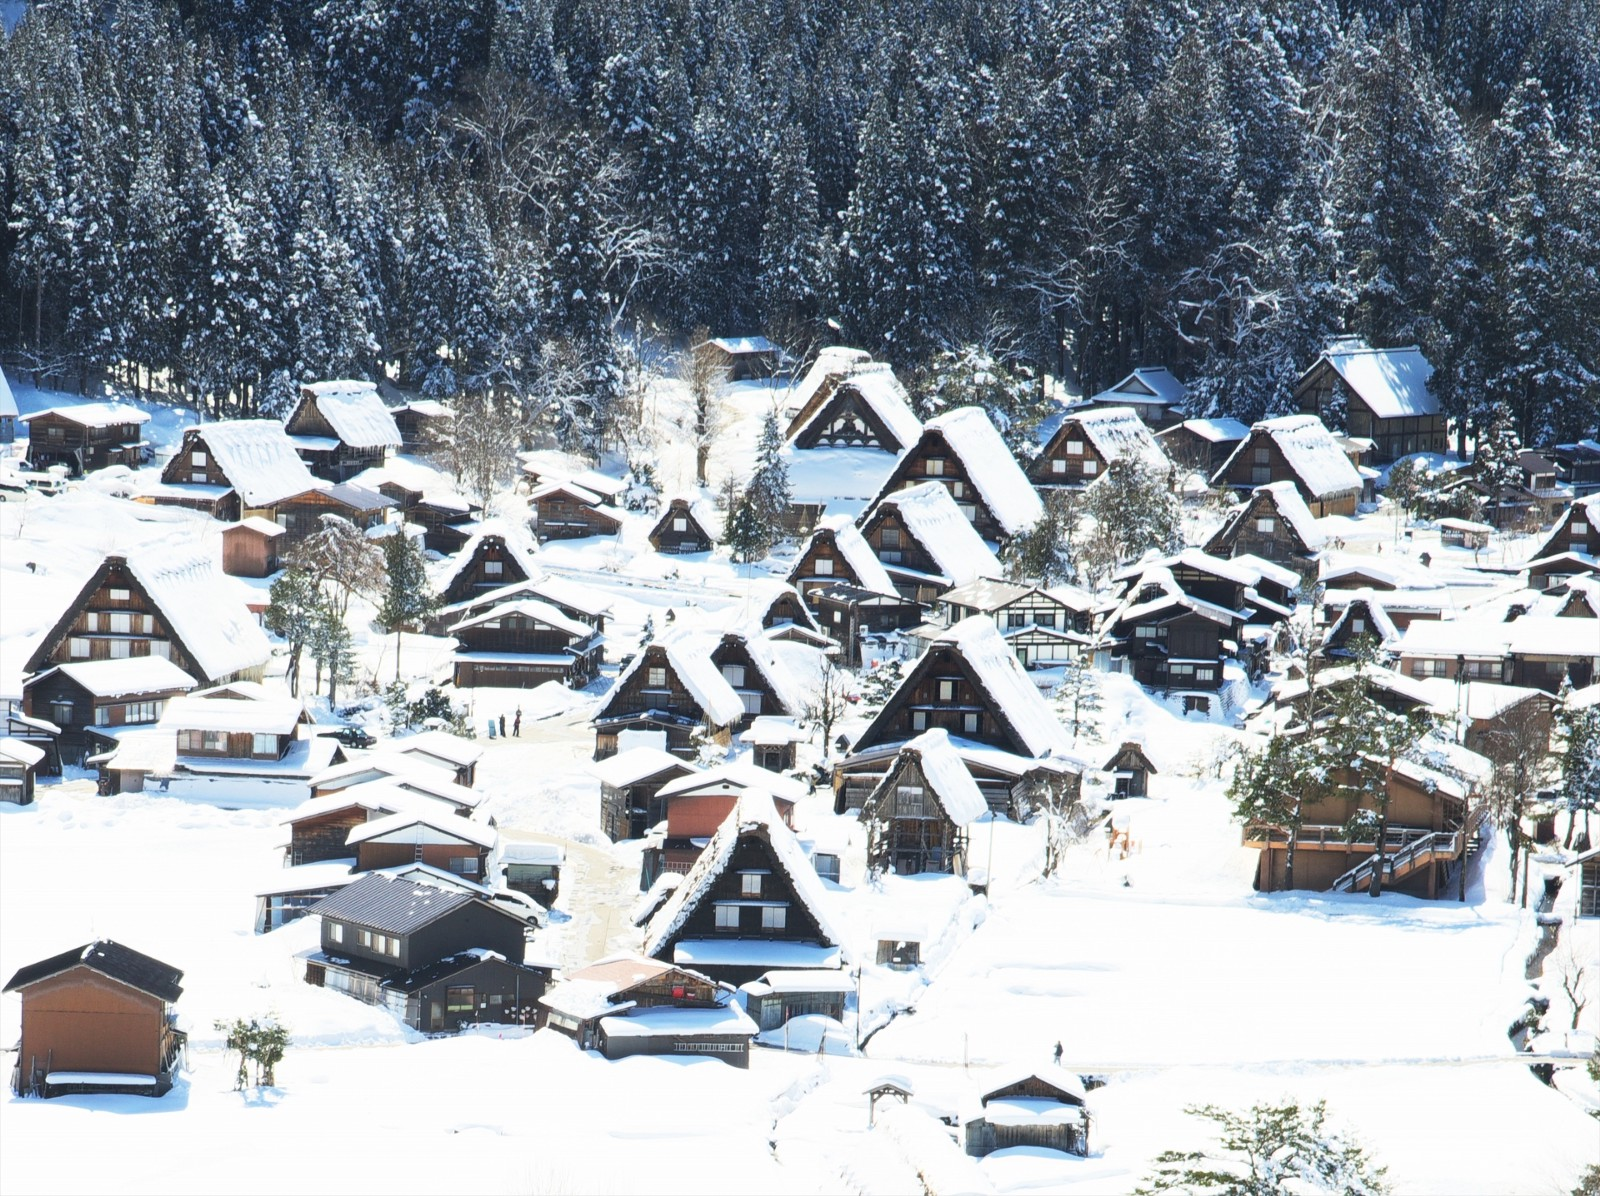 The picturesque scenery of SHirakawago Village in winter